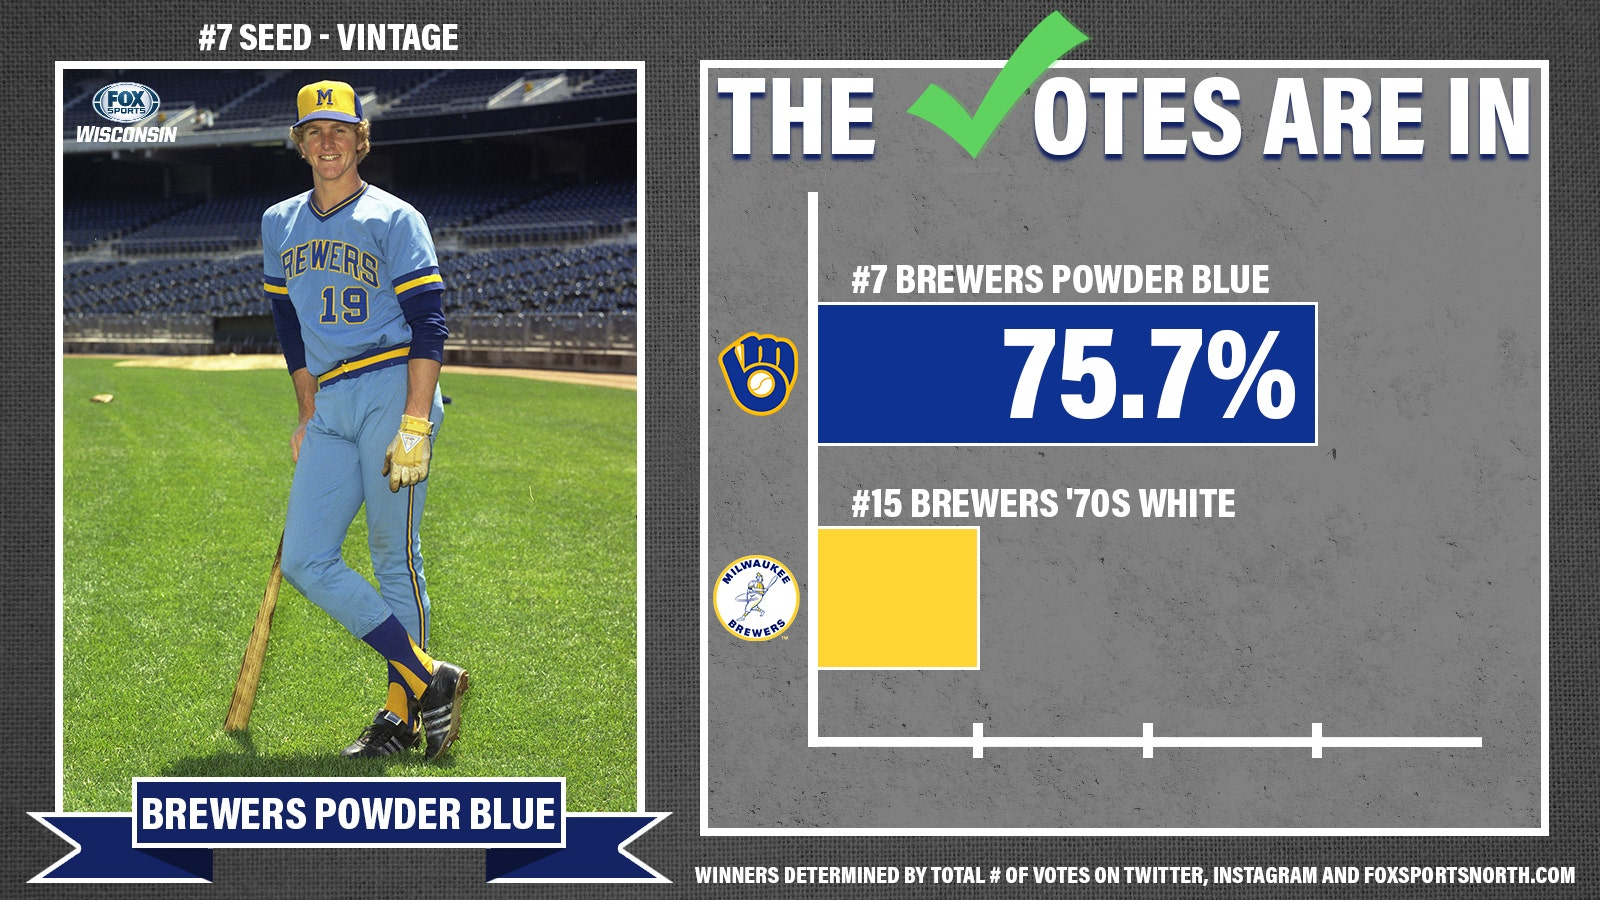 Brewers powder blue